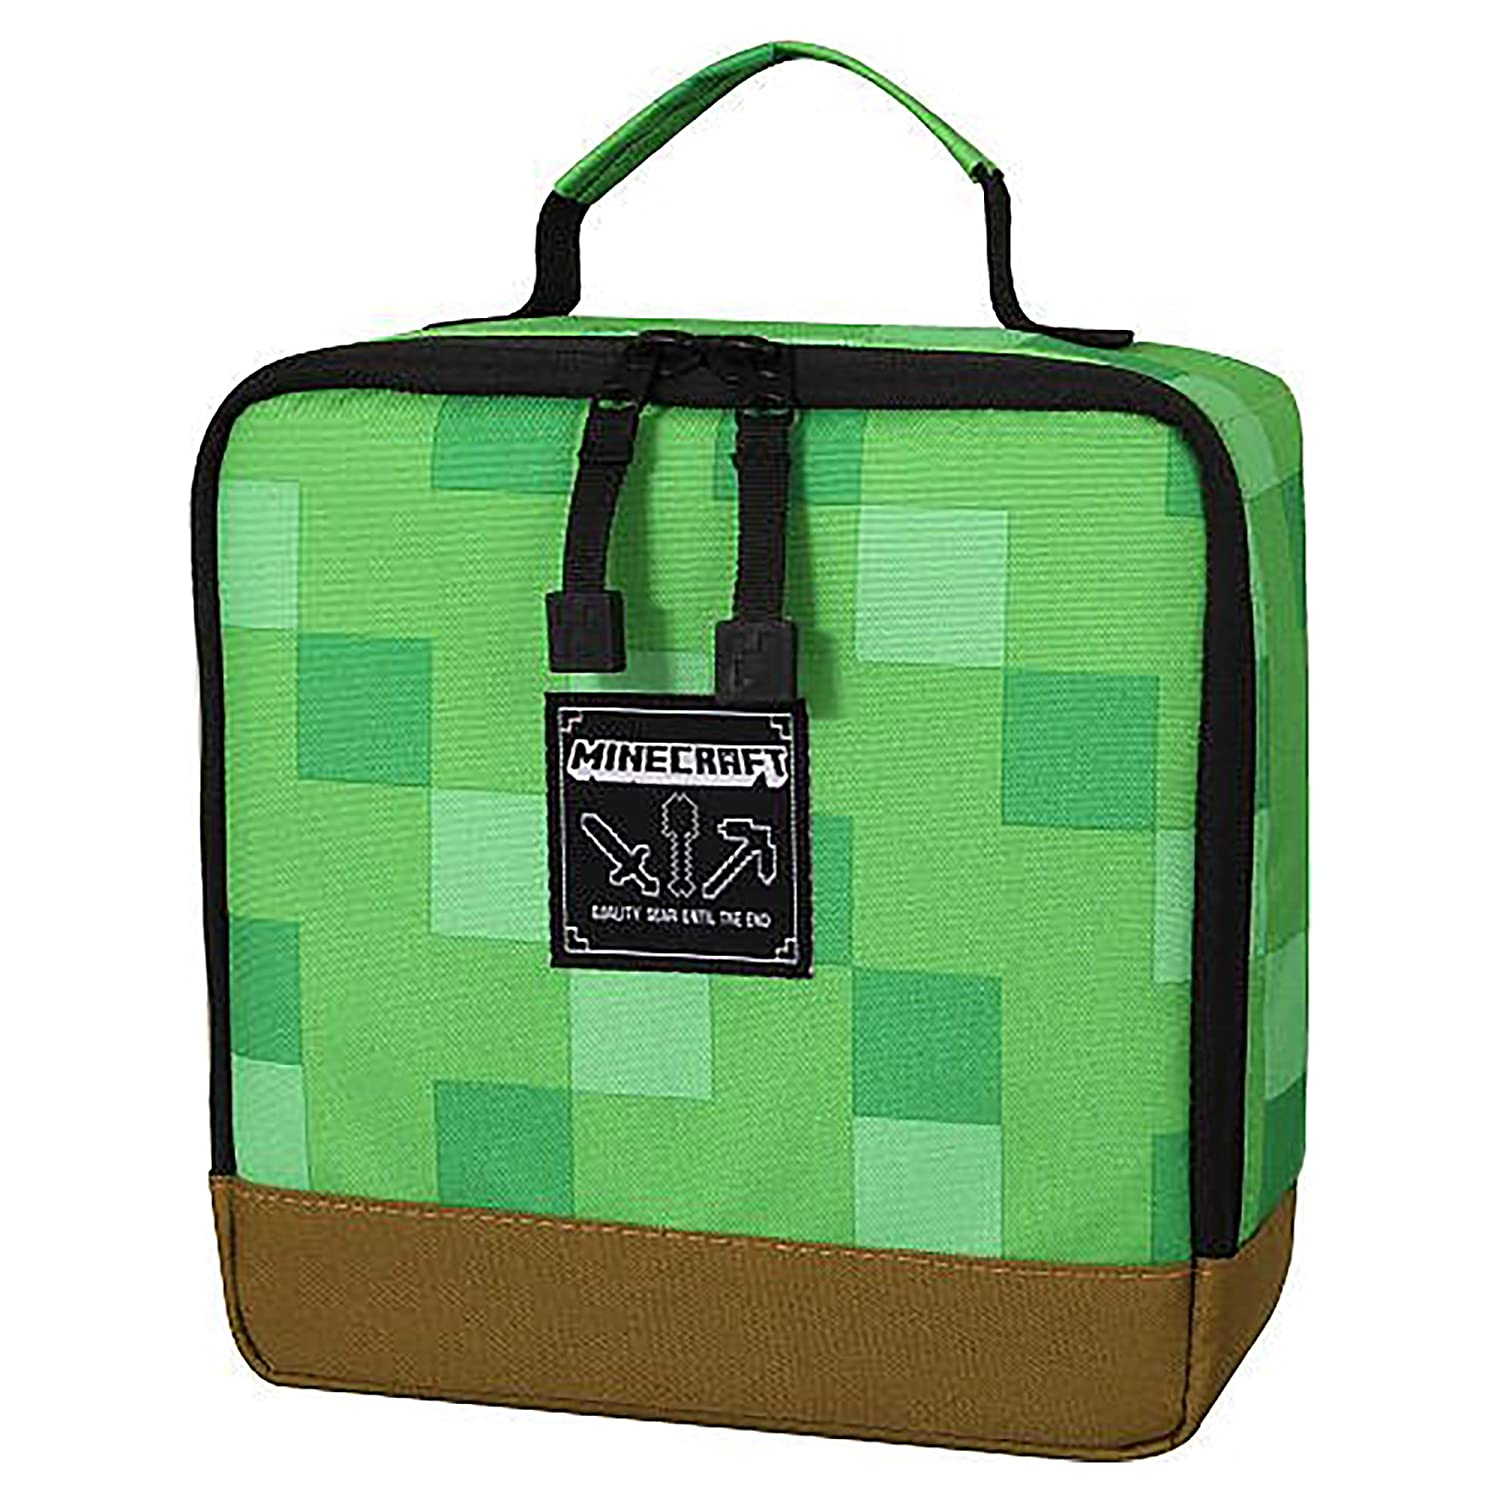 a20ed4dc38 Amazon.com  JINX Minecraft Creepy Creeper Backpack   Creeper Block Lunch  Bag Set  Clothing